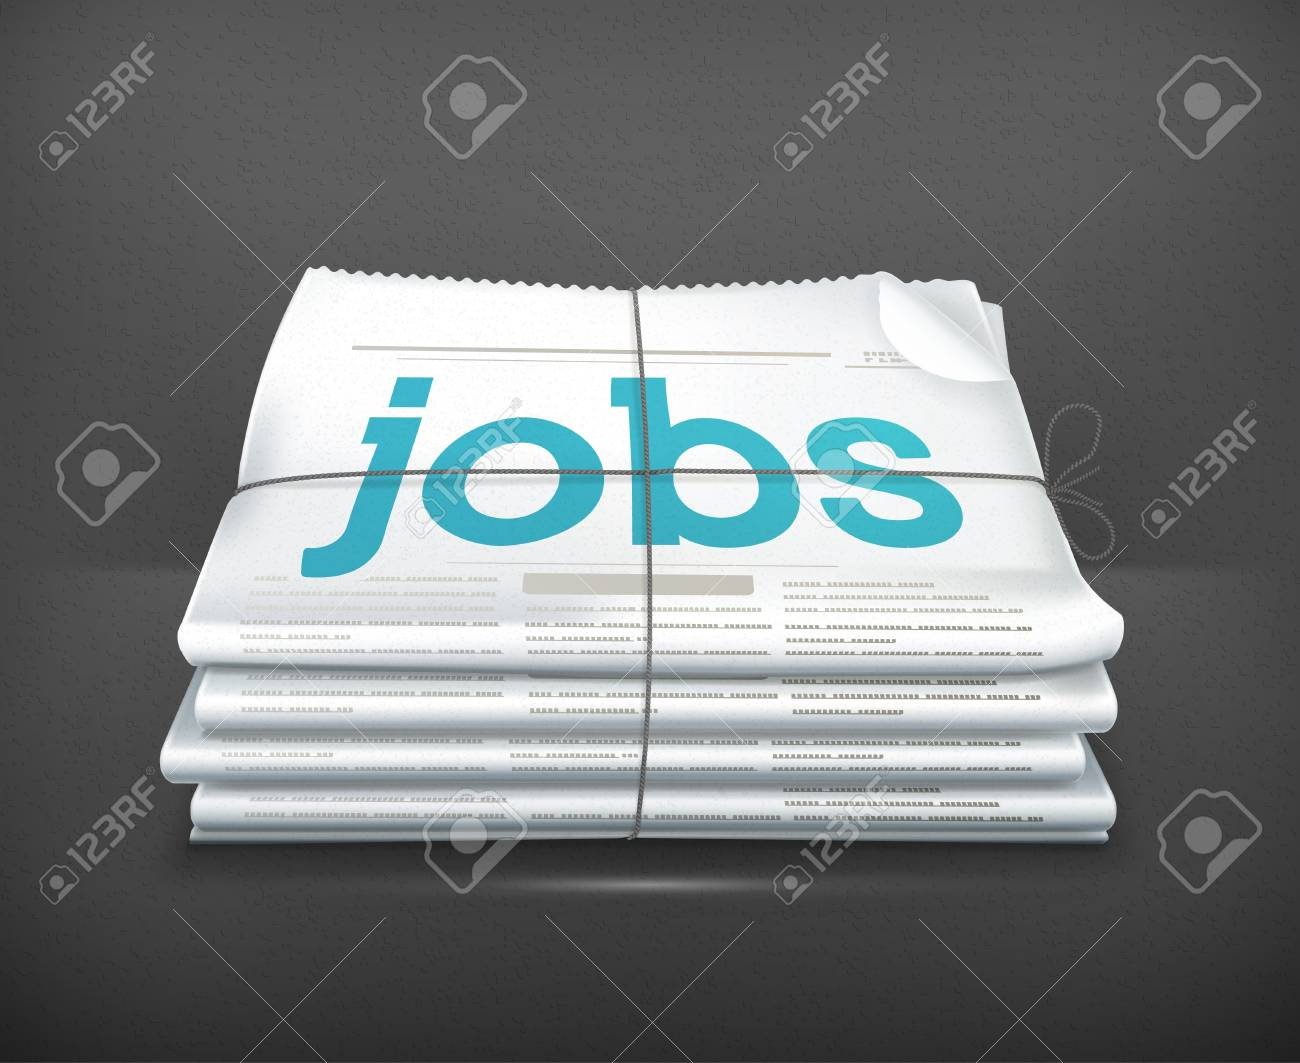 Jobs Stock Vector - 19648649